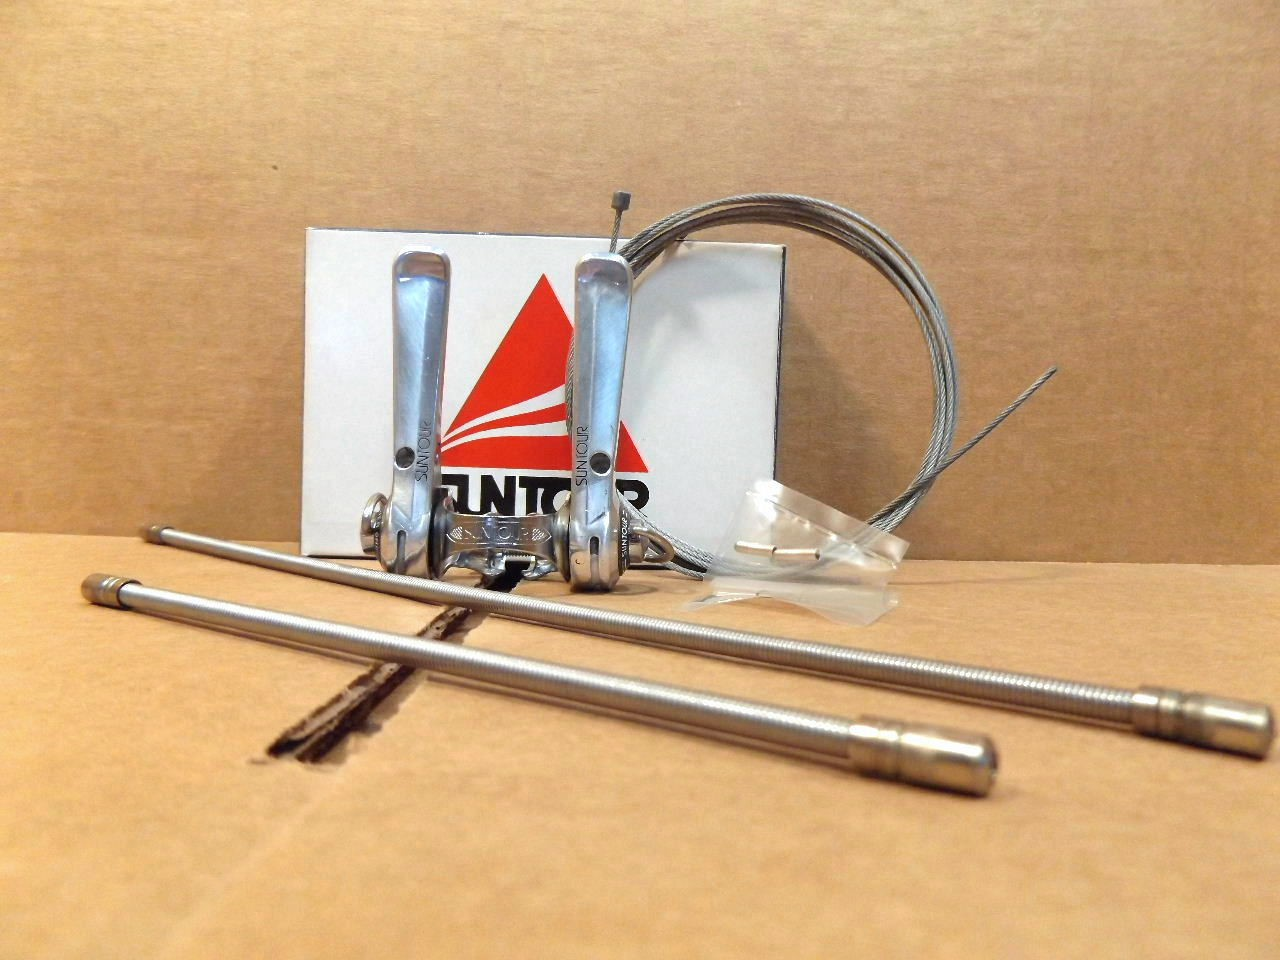 New-Old-Stock Suntour Sprint Down Tube Shifters...Clamp-On Model LD-4800